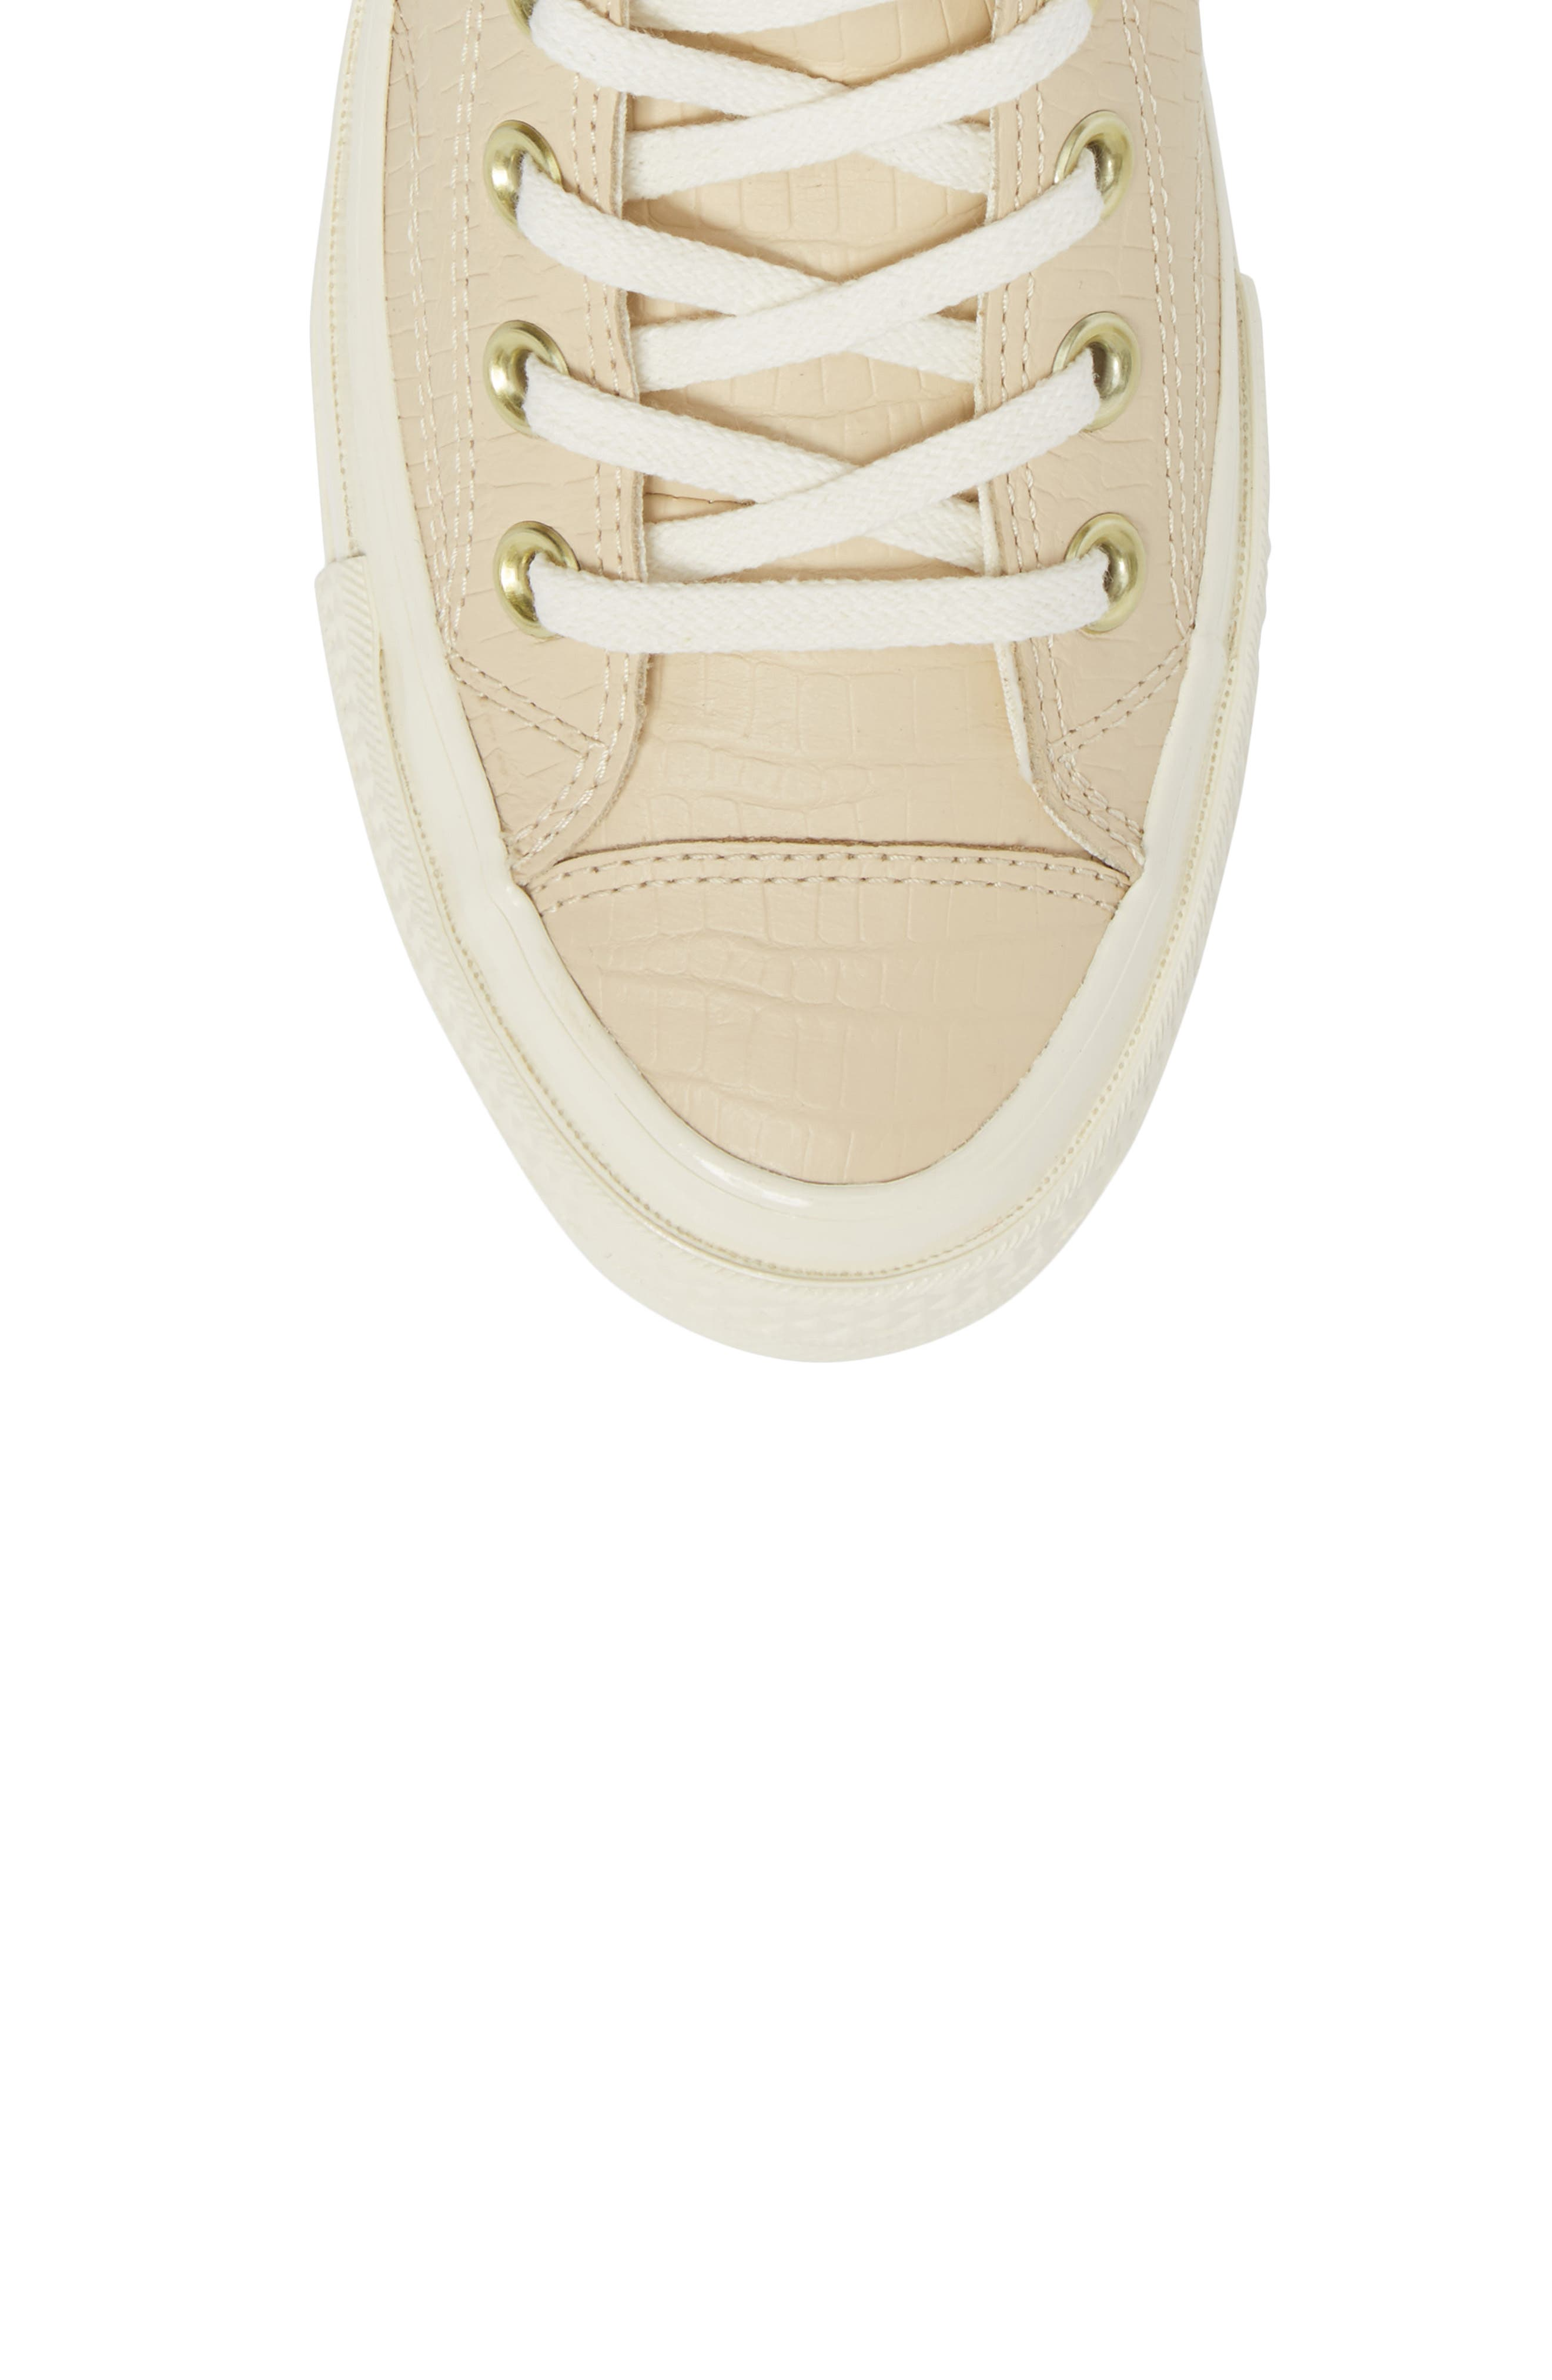 Chuck Taylor<sup>®</sup> All Star<sup>®</sup> CT 70 Reptile High Top Sneaker,                             Alternate thumbnail 5, color,                             Light Twine